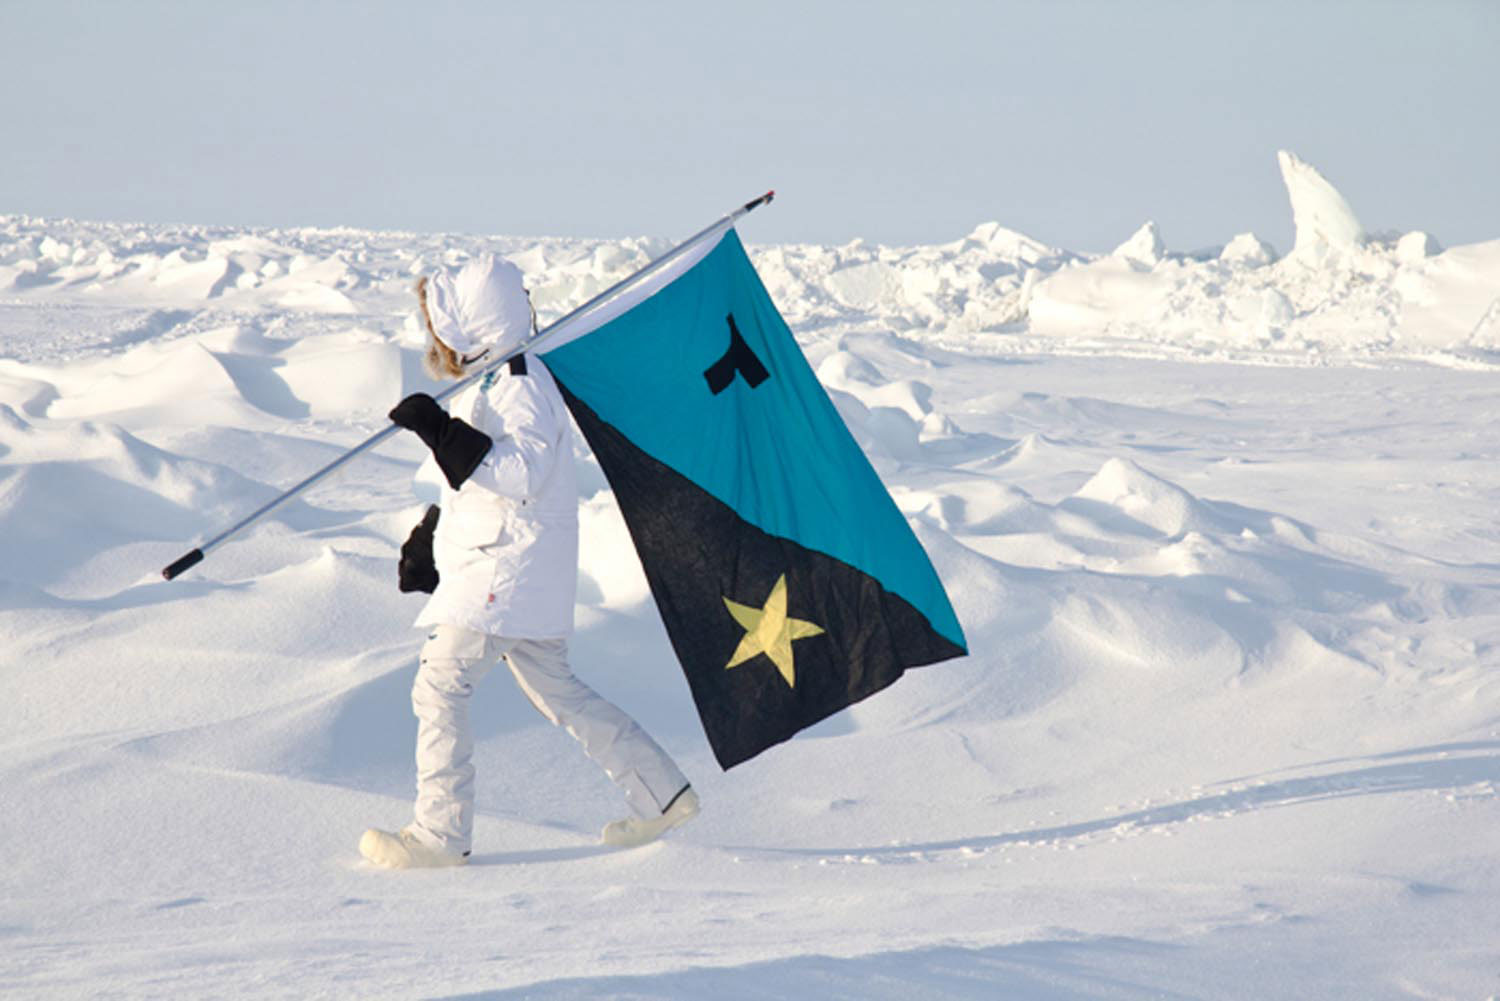 Tavares Strachan on one of his expeditions to the North Pole. Photo courtesy the artist